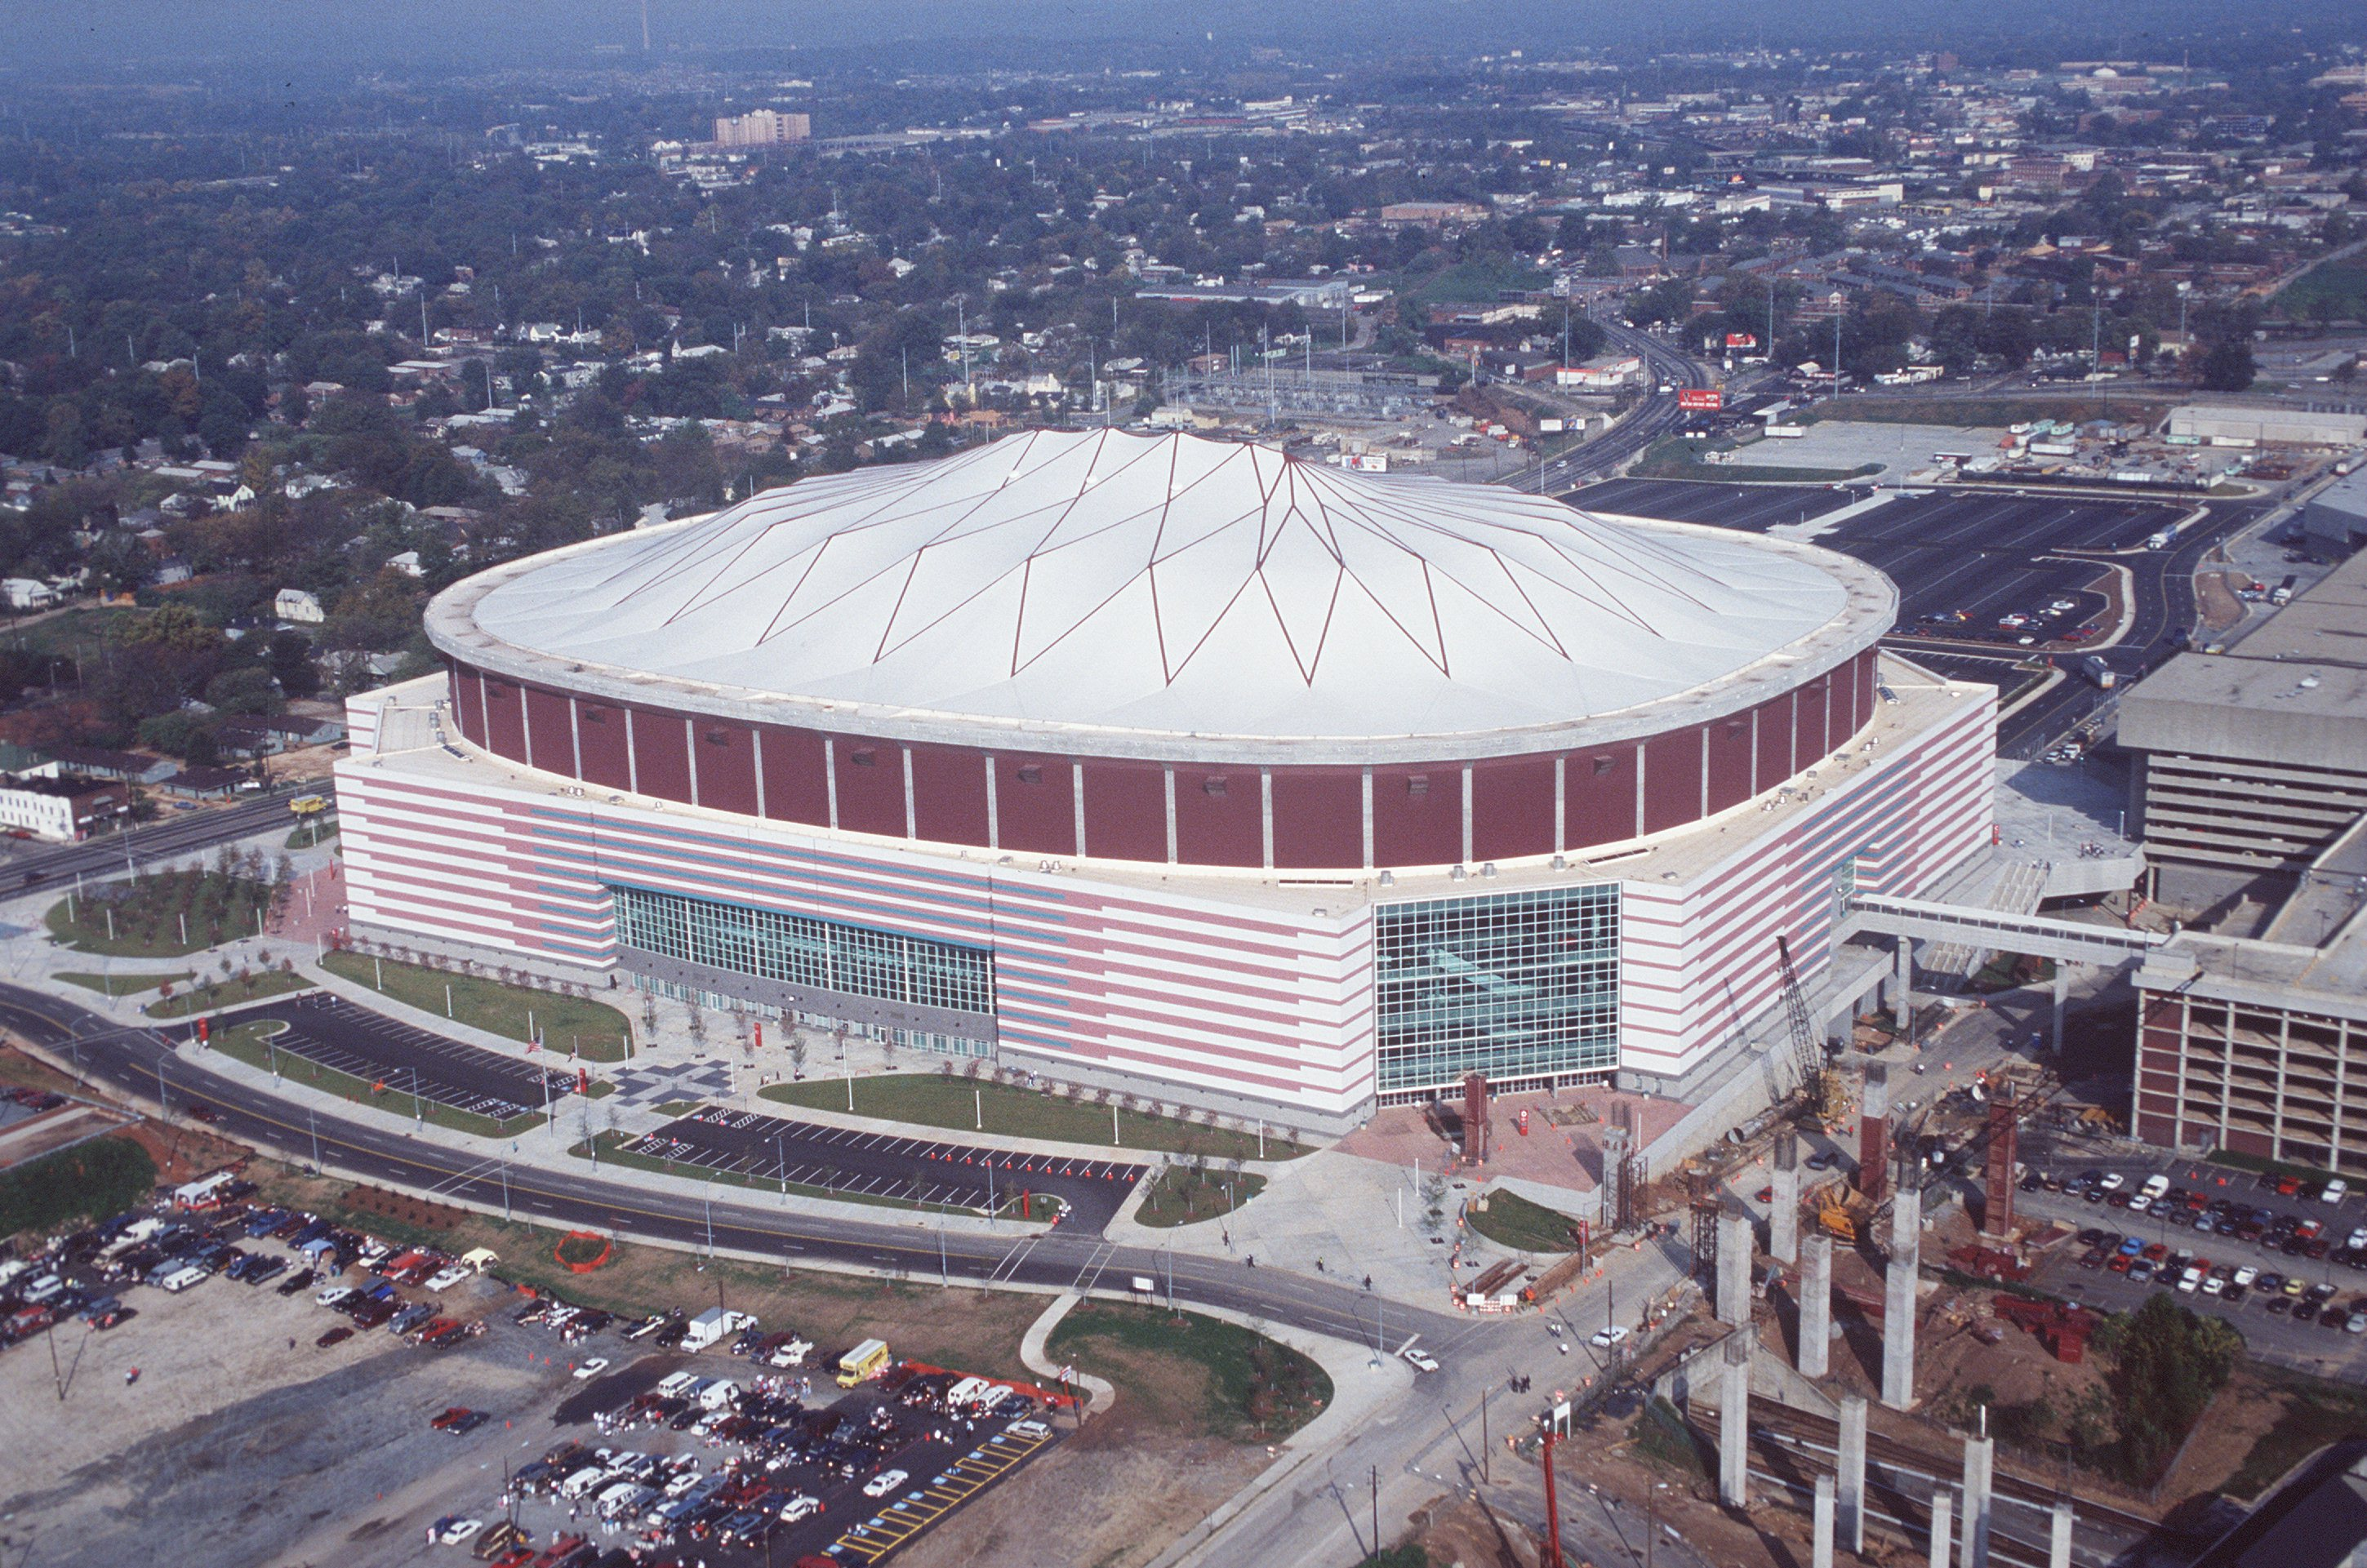 Completed in 1992, the Georgia Dome has been the home of the Atlanta Falcons ever since.